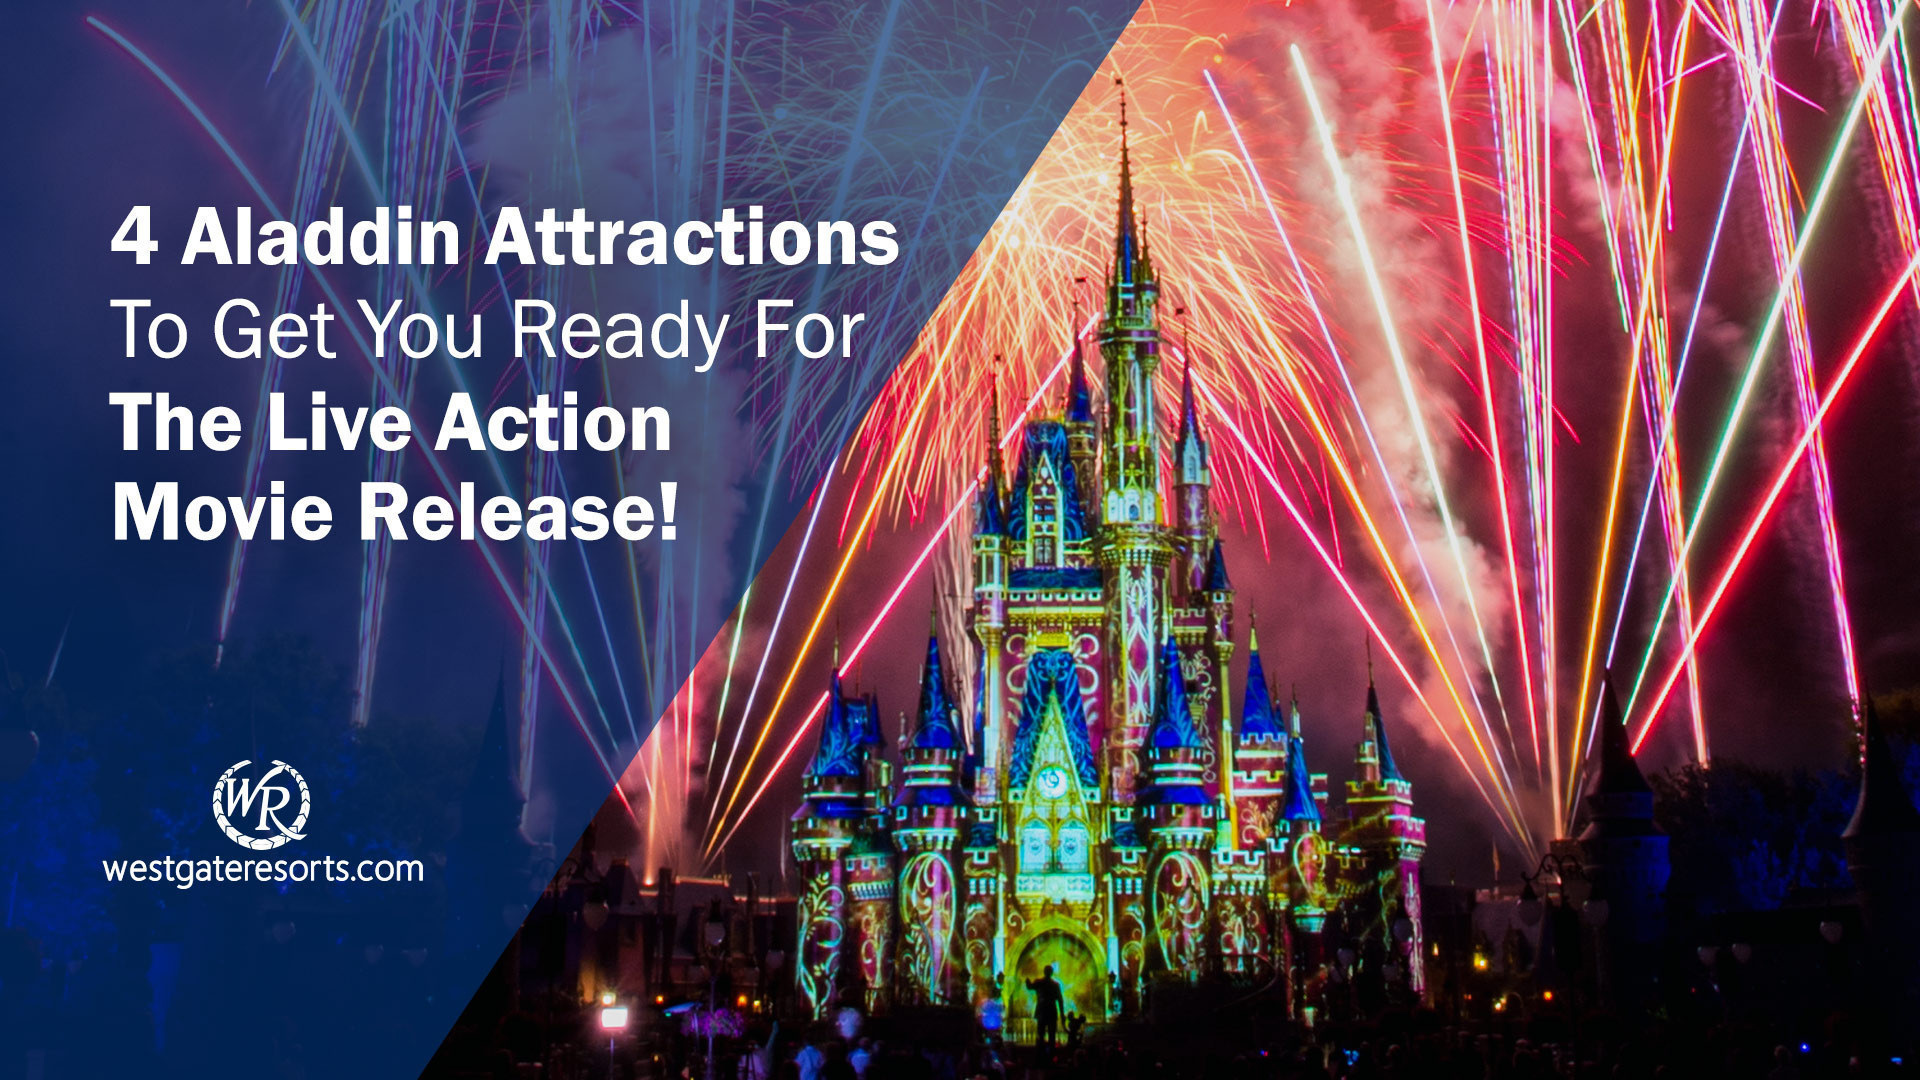 Get Your Magic Carpet Ride On! 4 Aladdin Attractions To Get You Ready For The Live Action Movie Release!